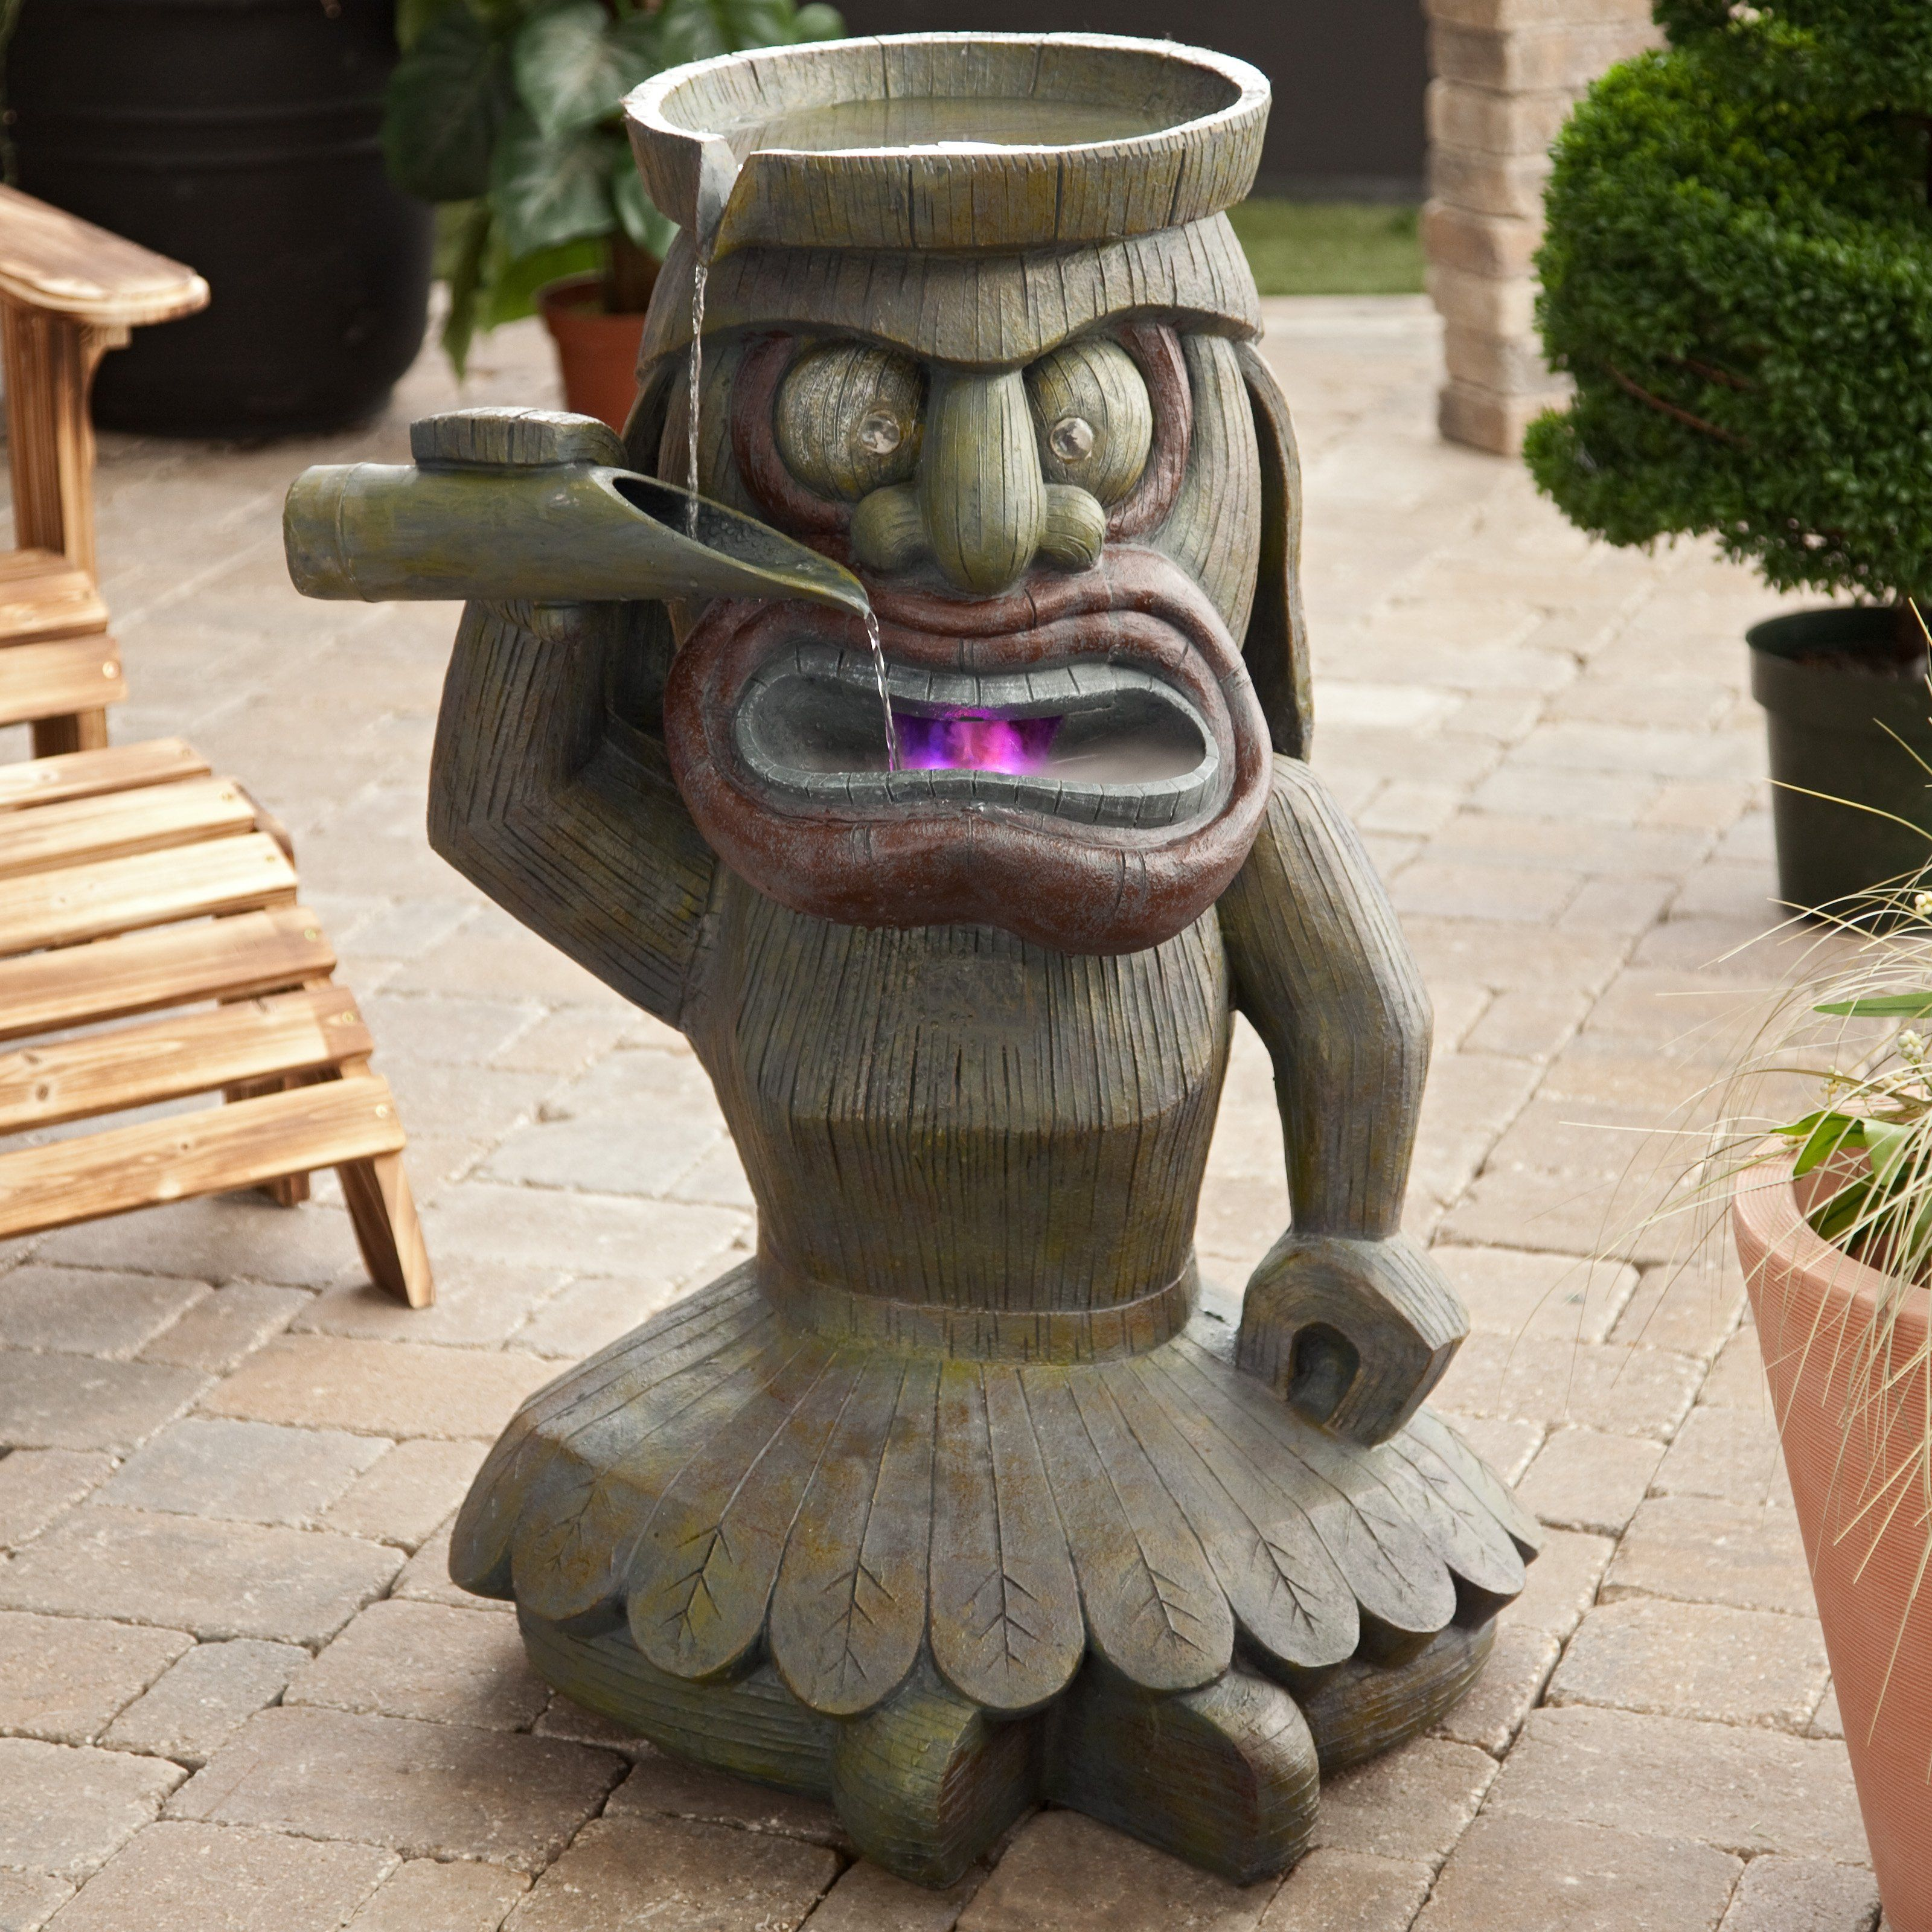 Have To Have It. King Luau Water Fountain